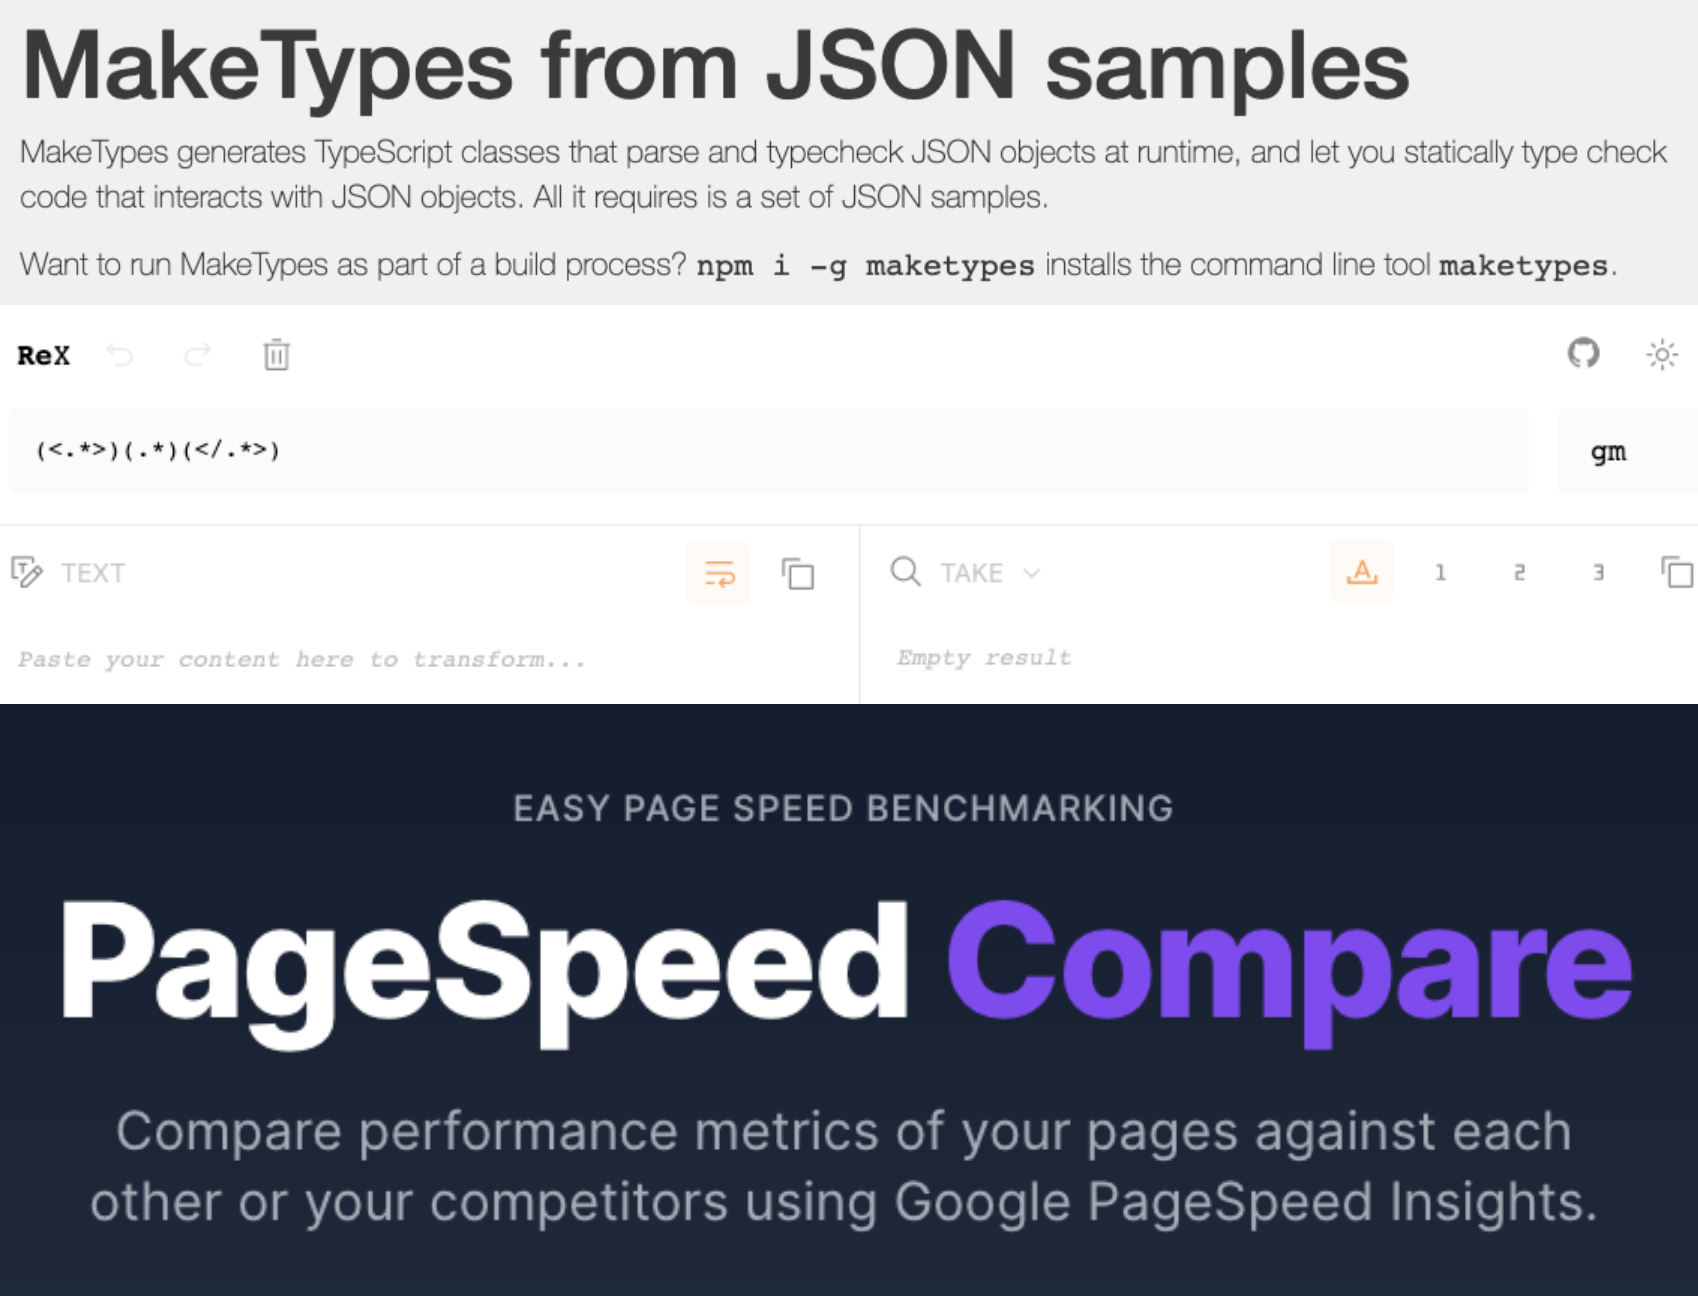 Screenshots of MakeTypes, ReX and Pagespeed compare